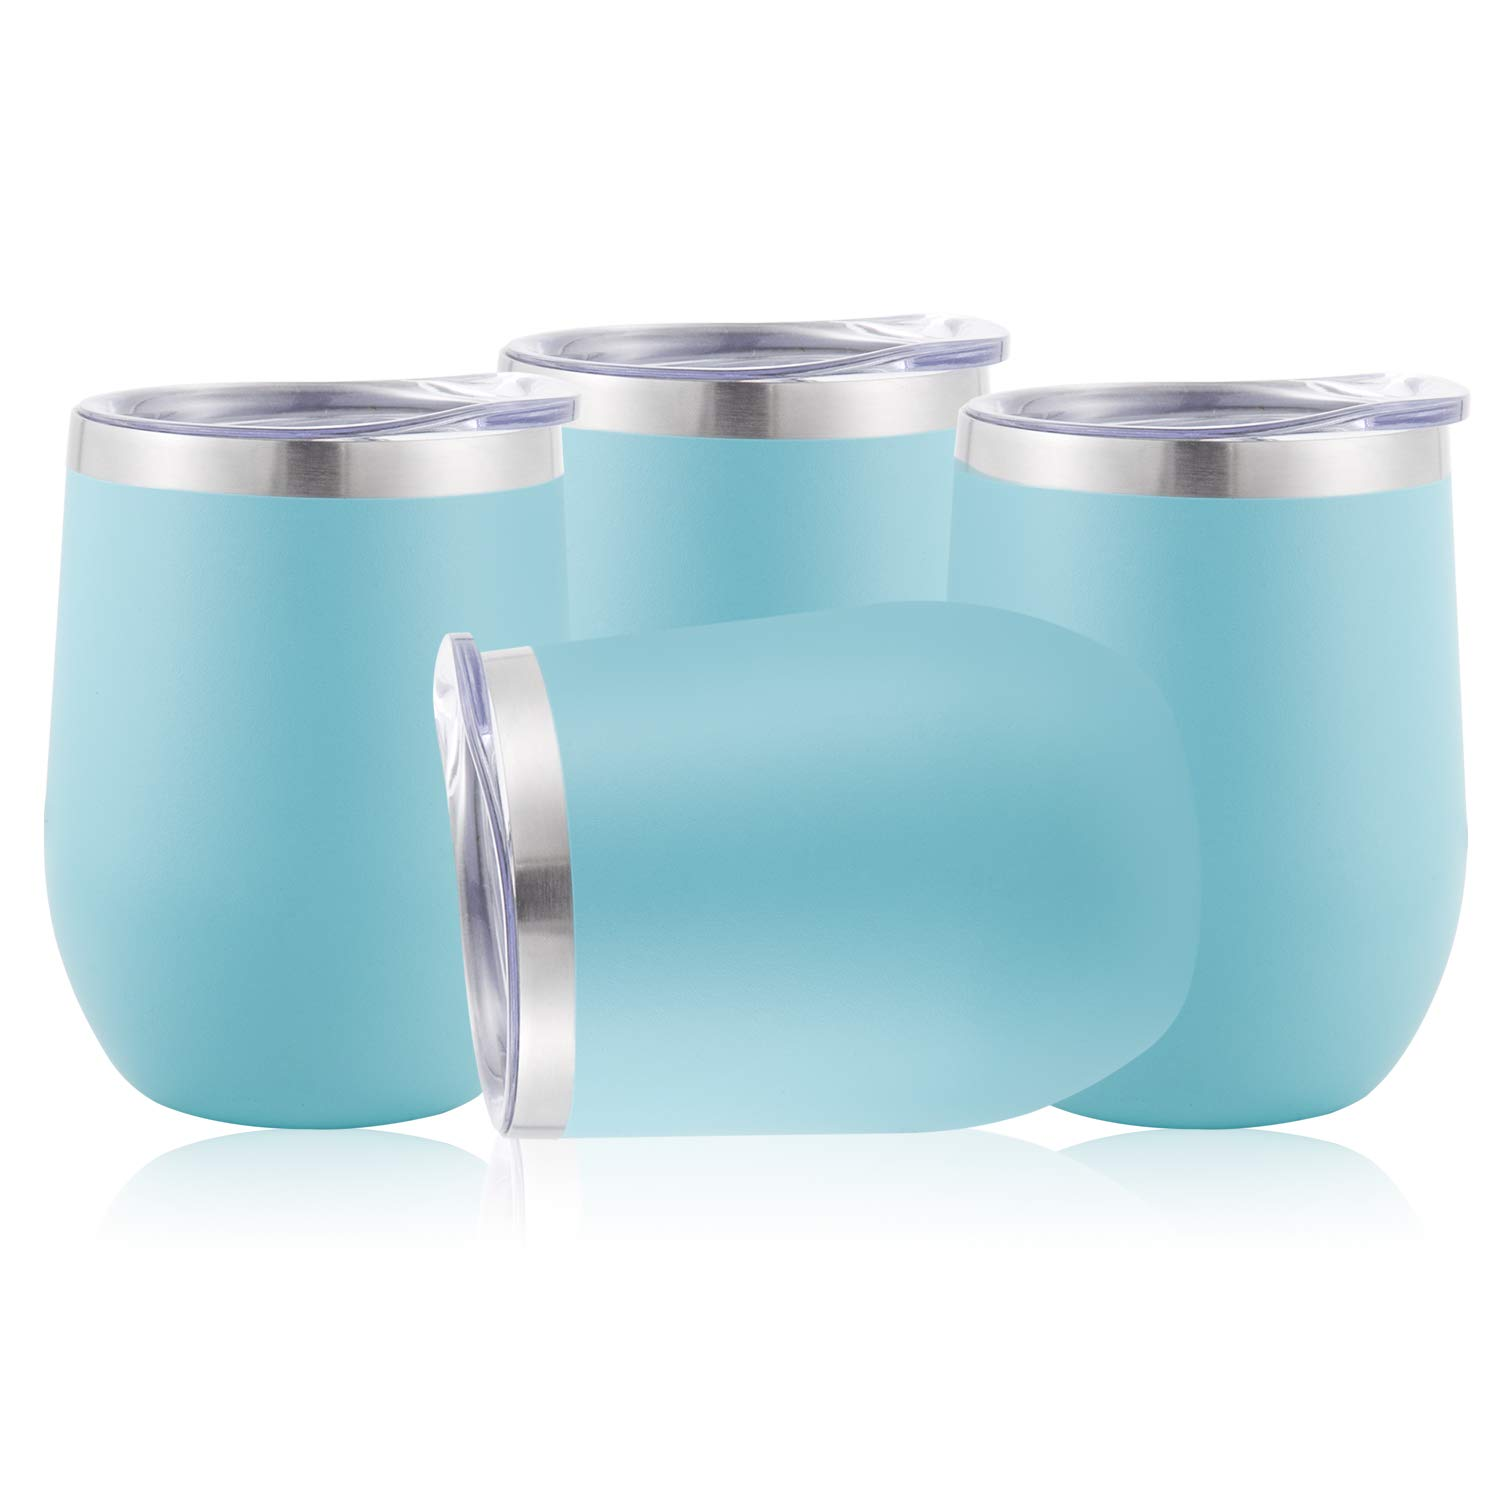 DOMICARE Insulated Wine Tumbler Glasses with Lid (4 Pack, Light Blue) - 12 OZ Stemless Double Wall Vacuum Traval Mug Cup - Keeping Cold & Hot for Wine, Coffee, Cocktails, Drinks